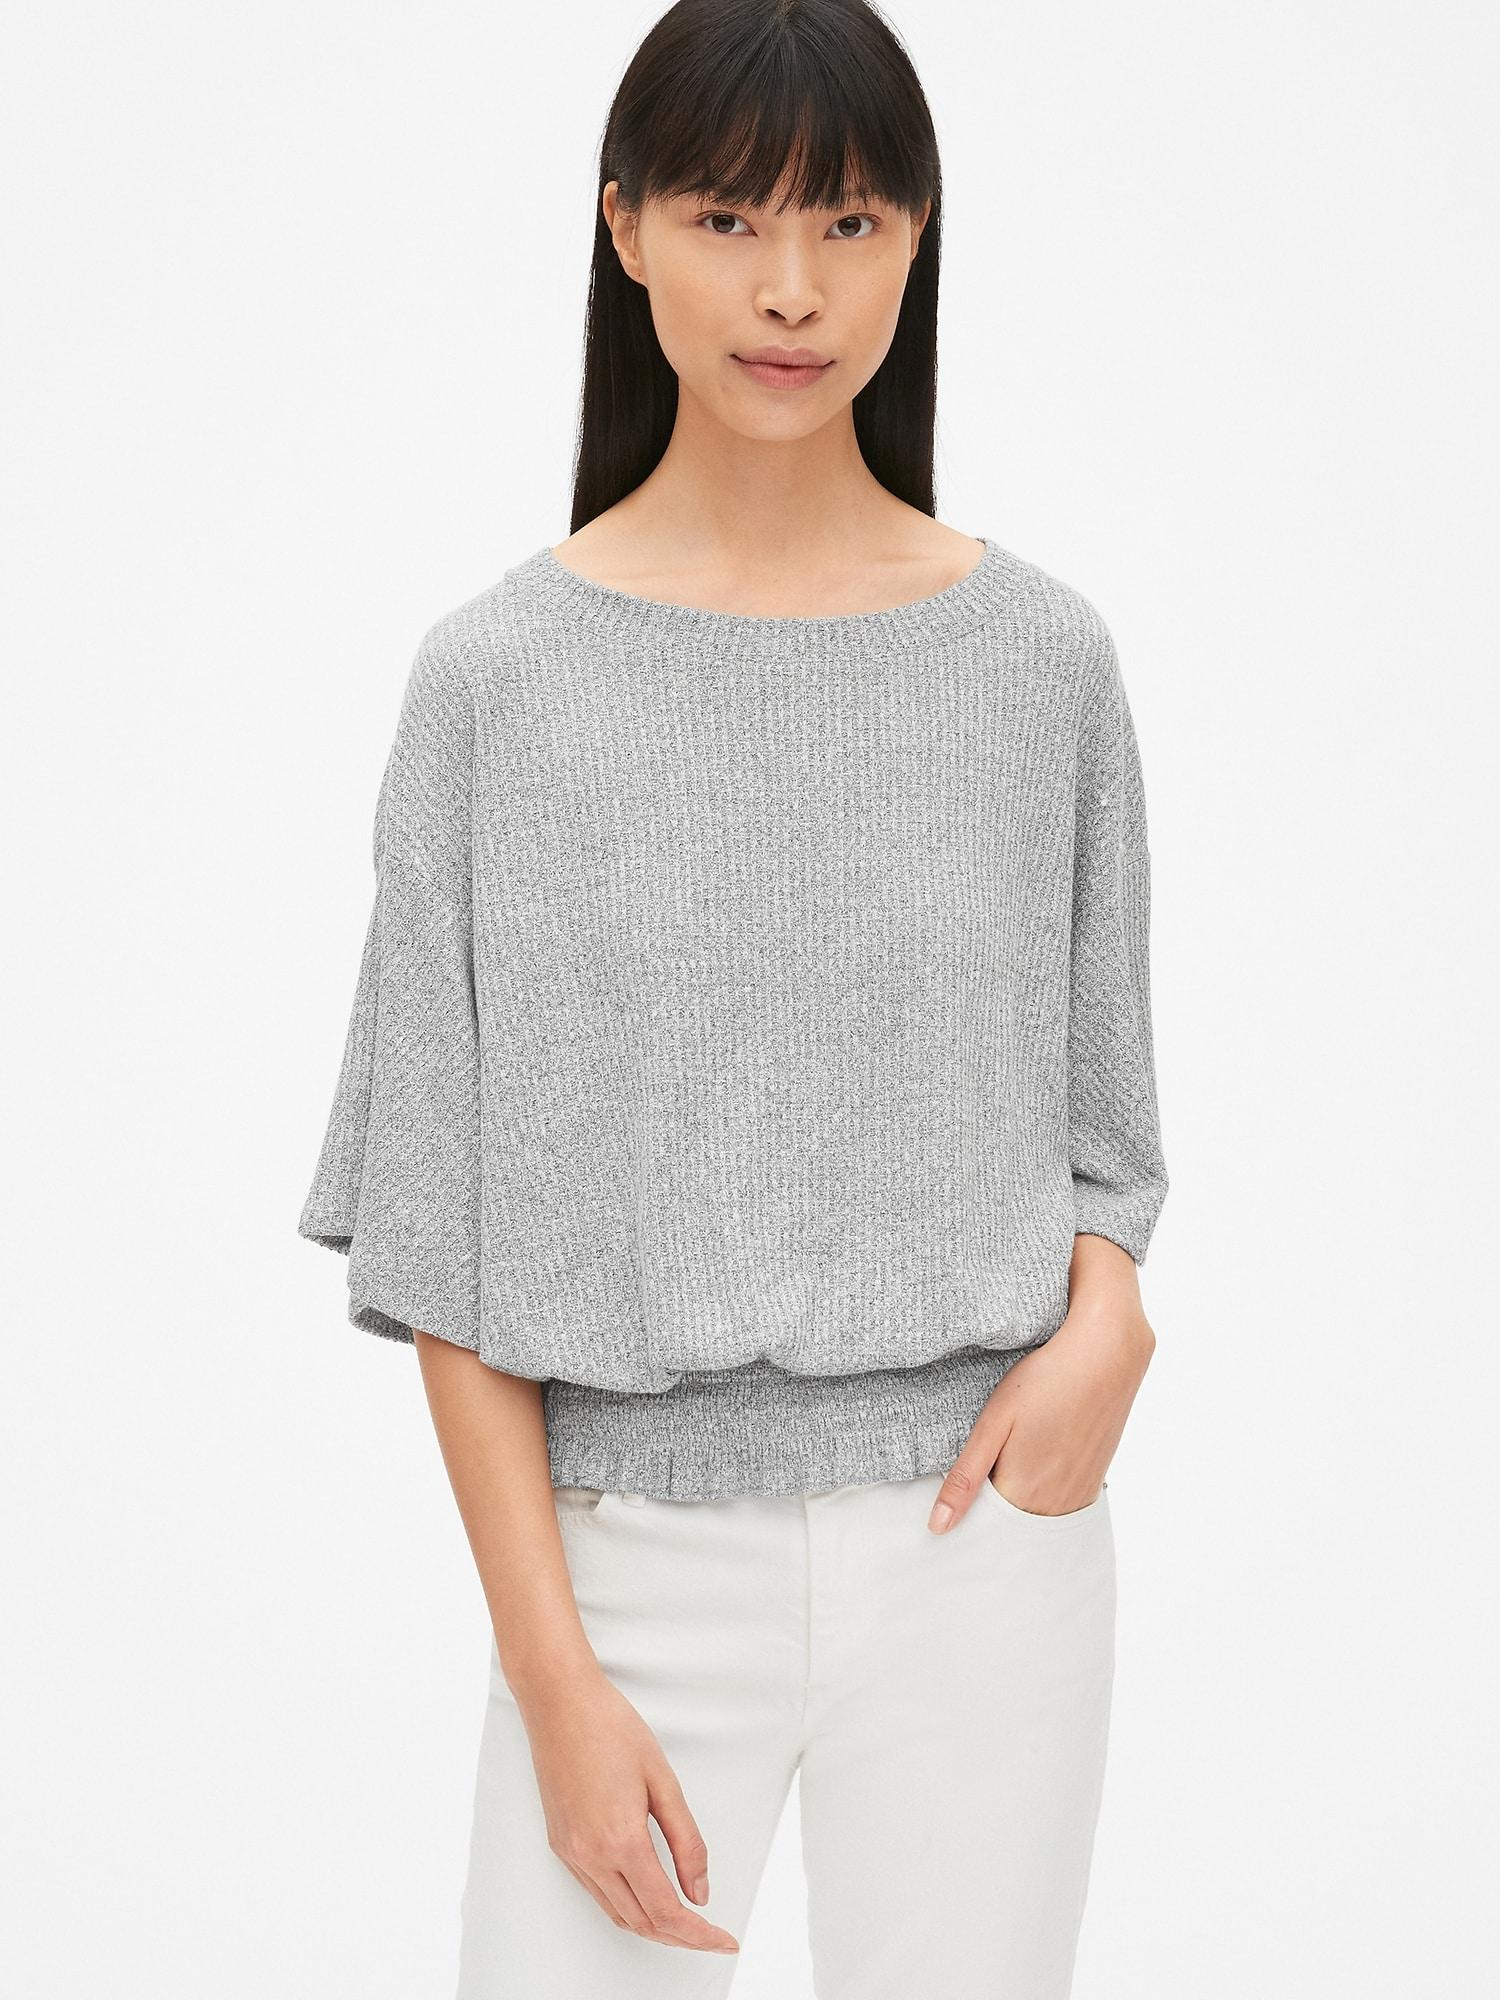 15b8d0a29ce17 Lyst - Gap Softspun Waffle-knit Smocked Short Sleeve Top in Gray